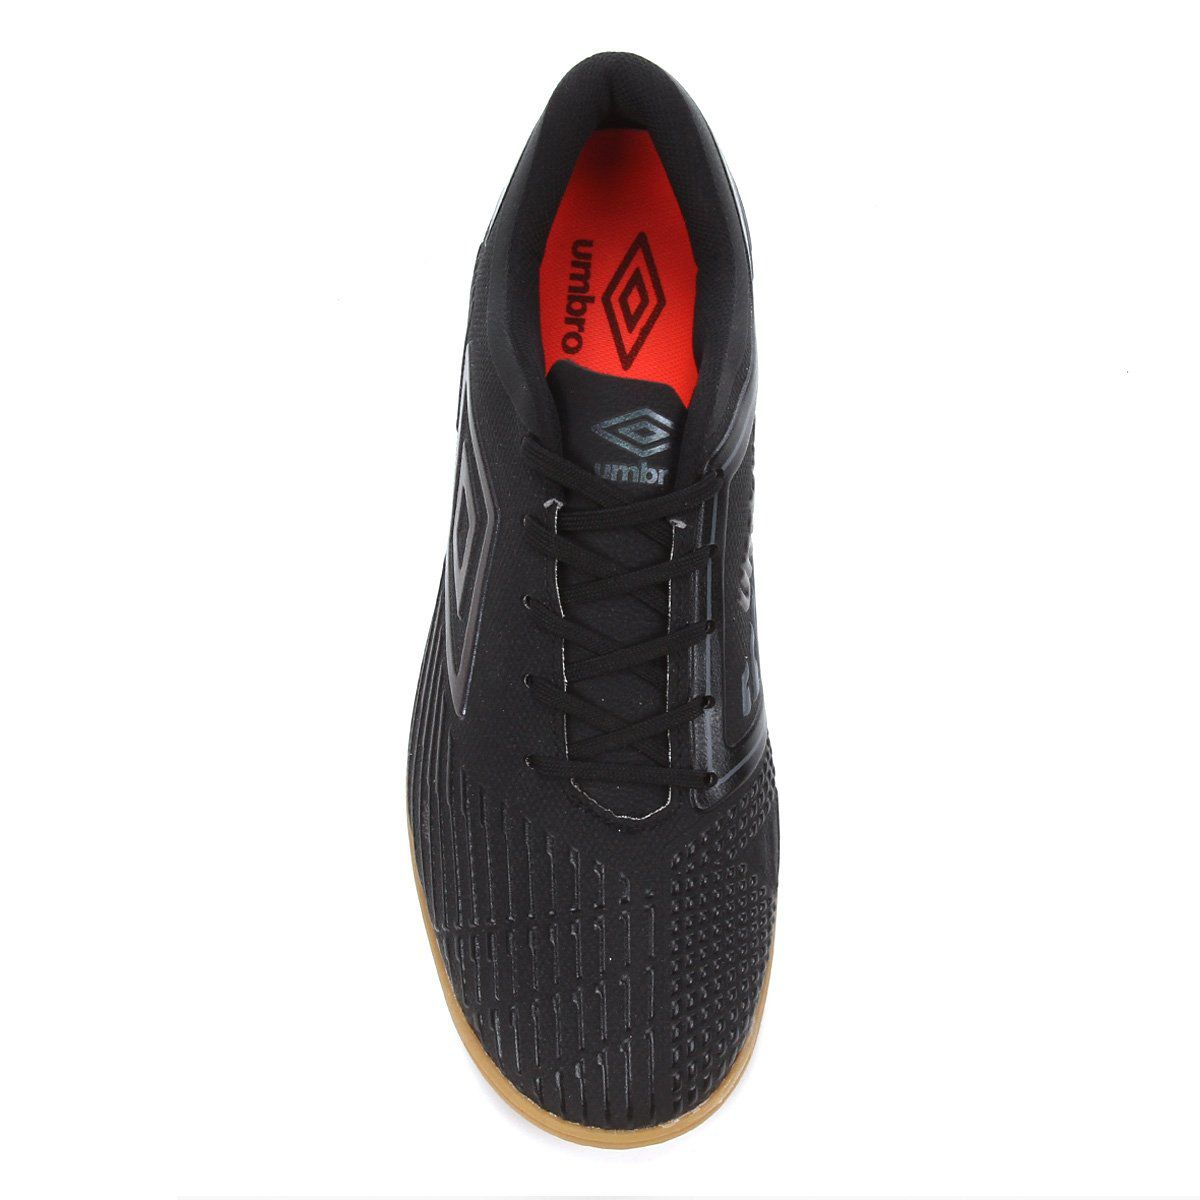 Tenis Umbro Soul II Club Futsal EVA Borracha